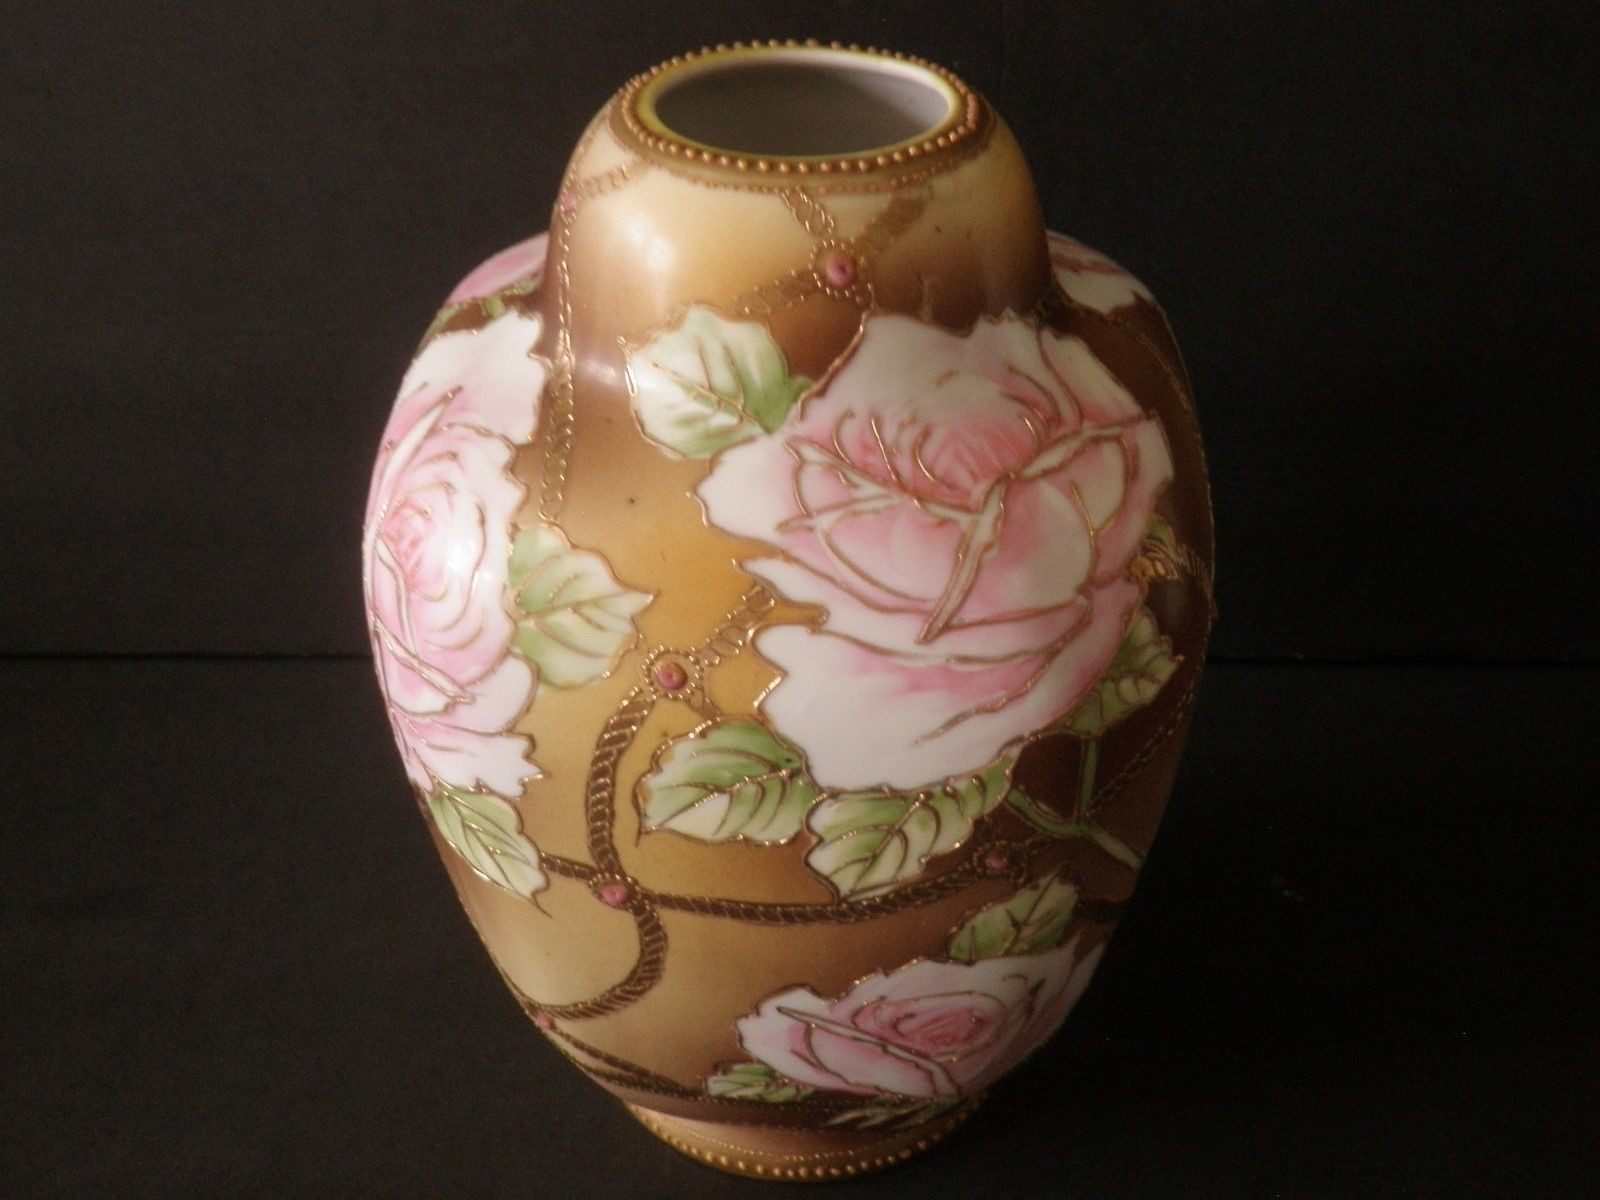 nippon vase marks of vintage nippon vase roses gold trellis raised gold blue in 1 of 7only 1 available